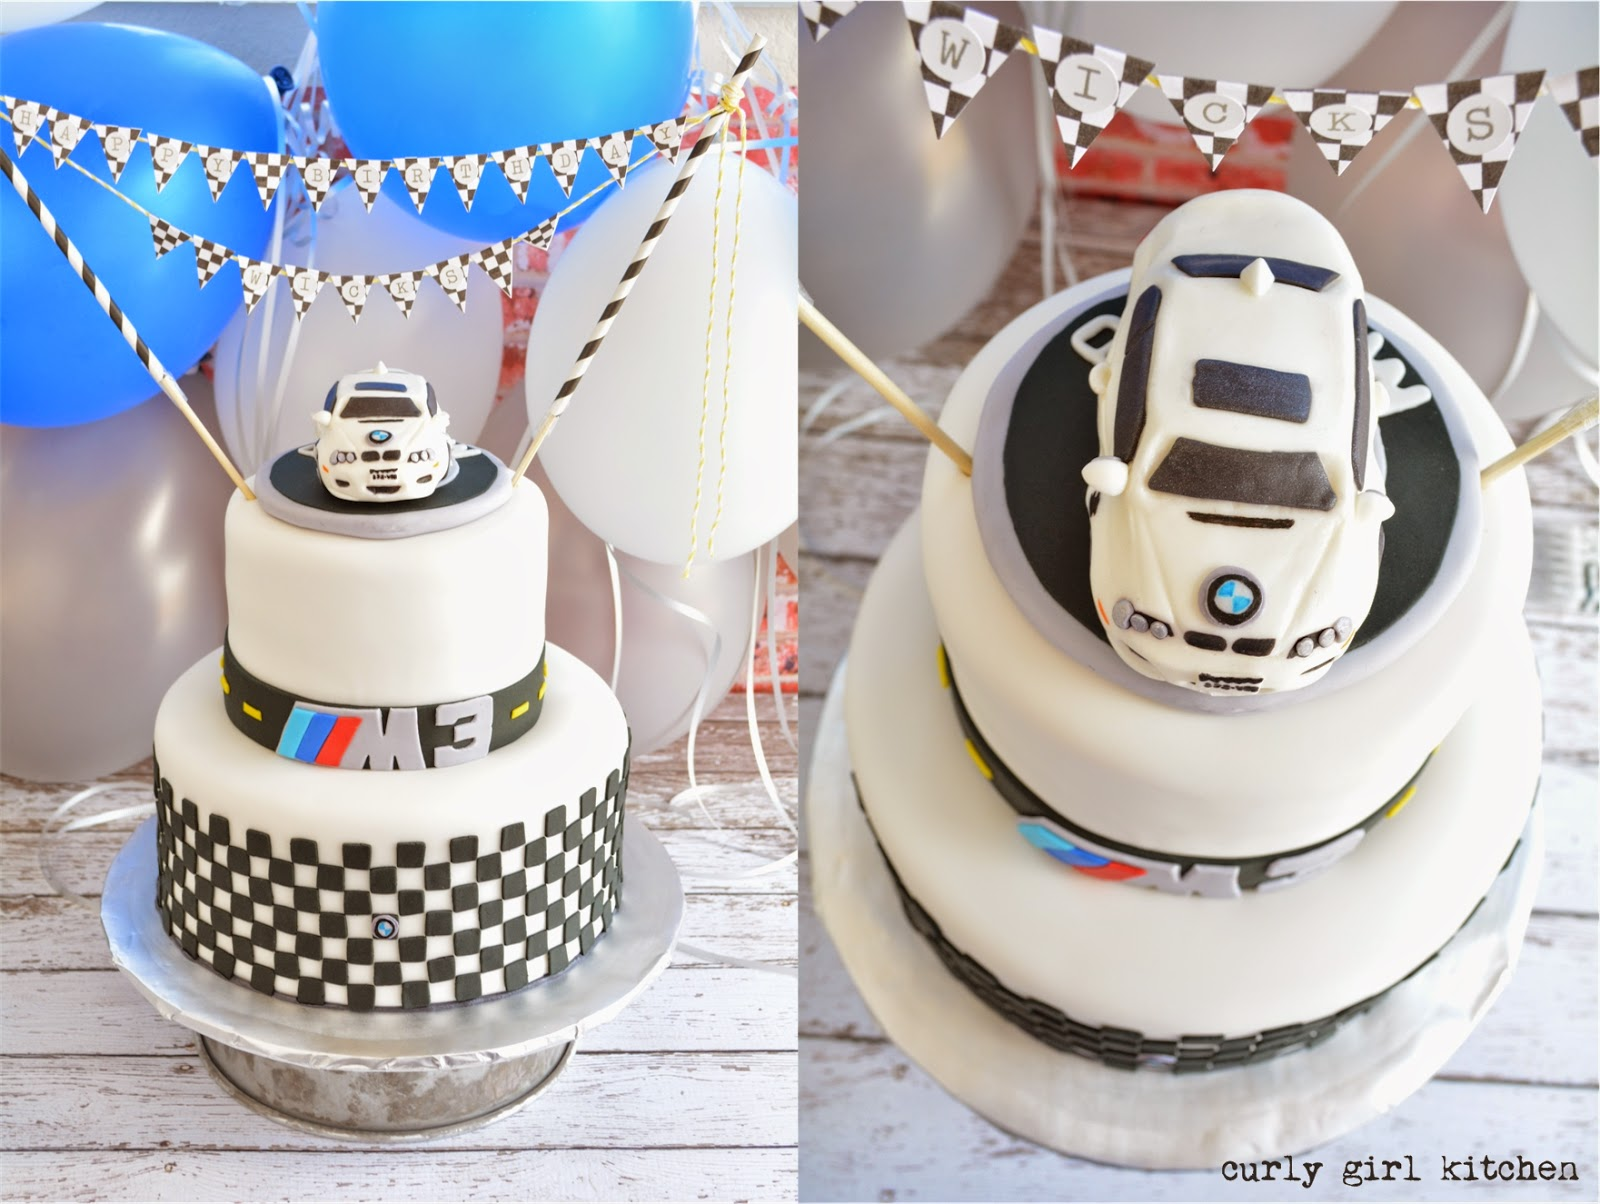 Curly Girl Kitchen BMW 40th Birthday Cake